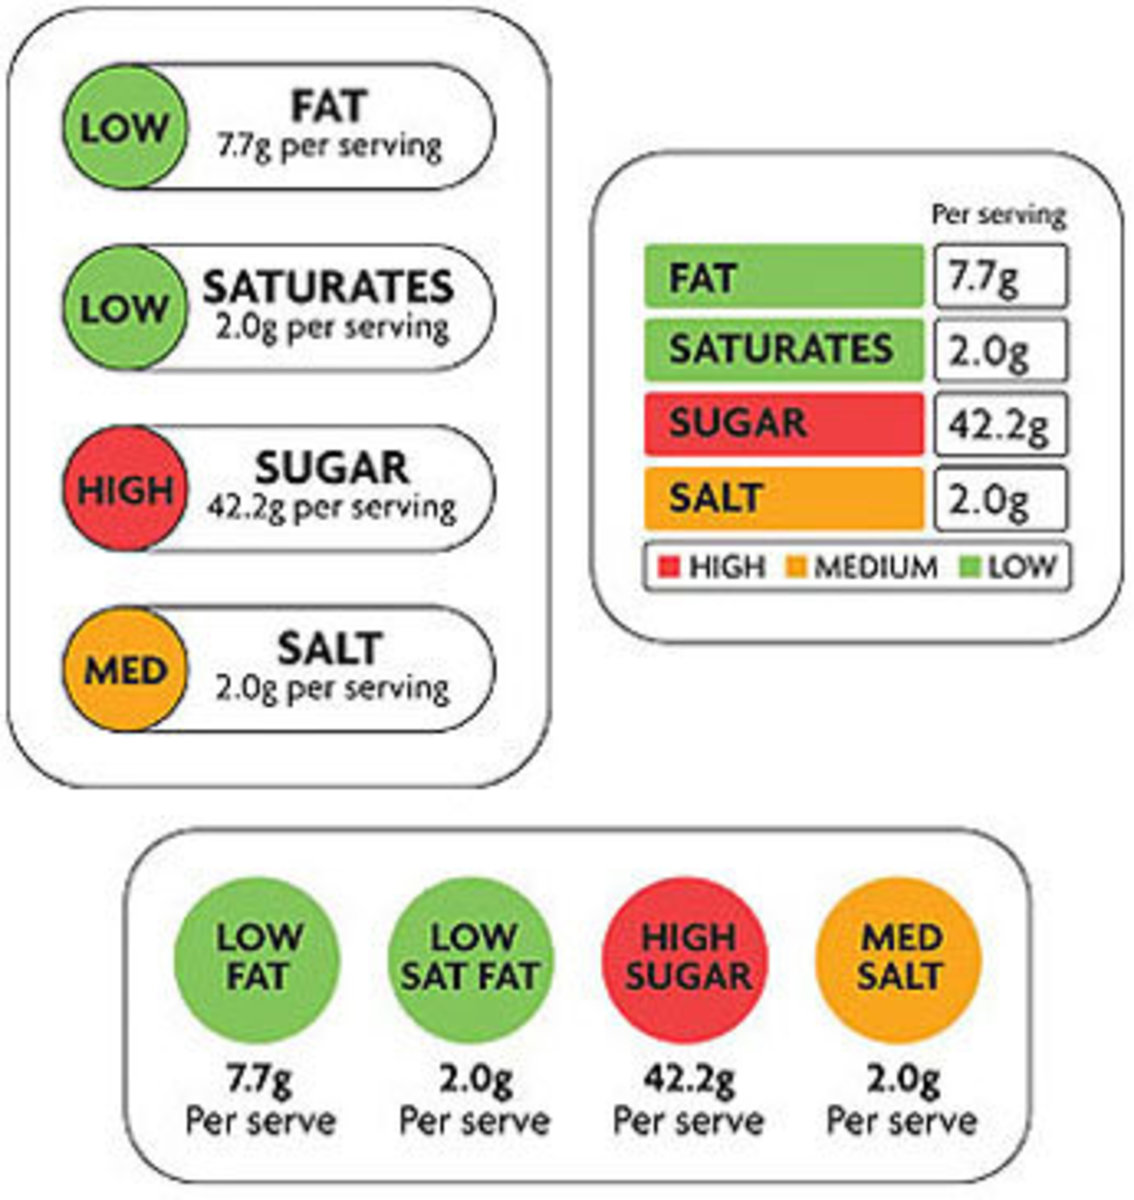 Food labels using traffic colors to showcase the amount of sugar, salt, fat, etc..